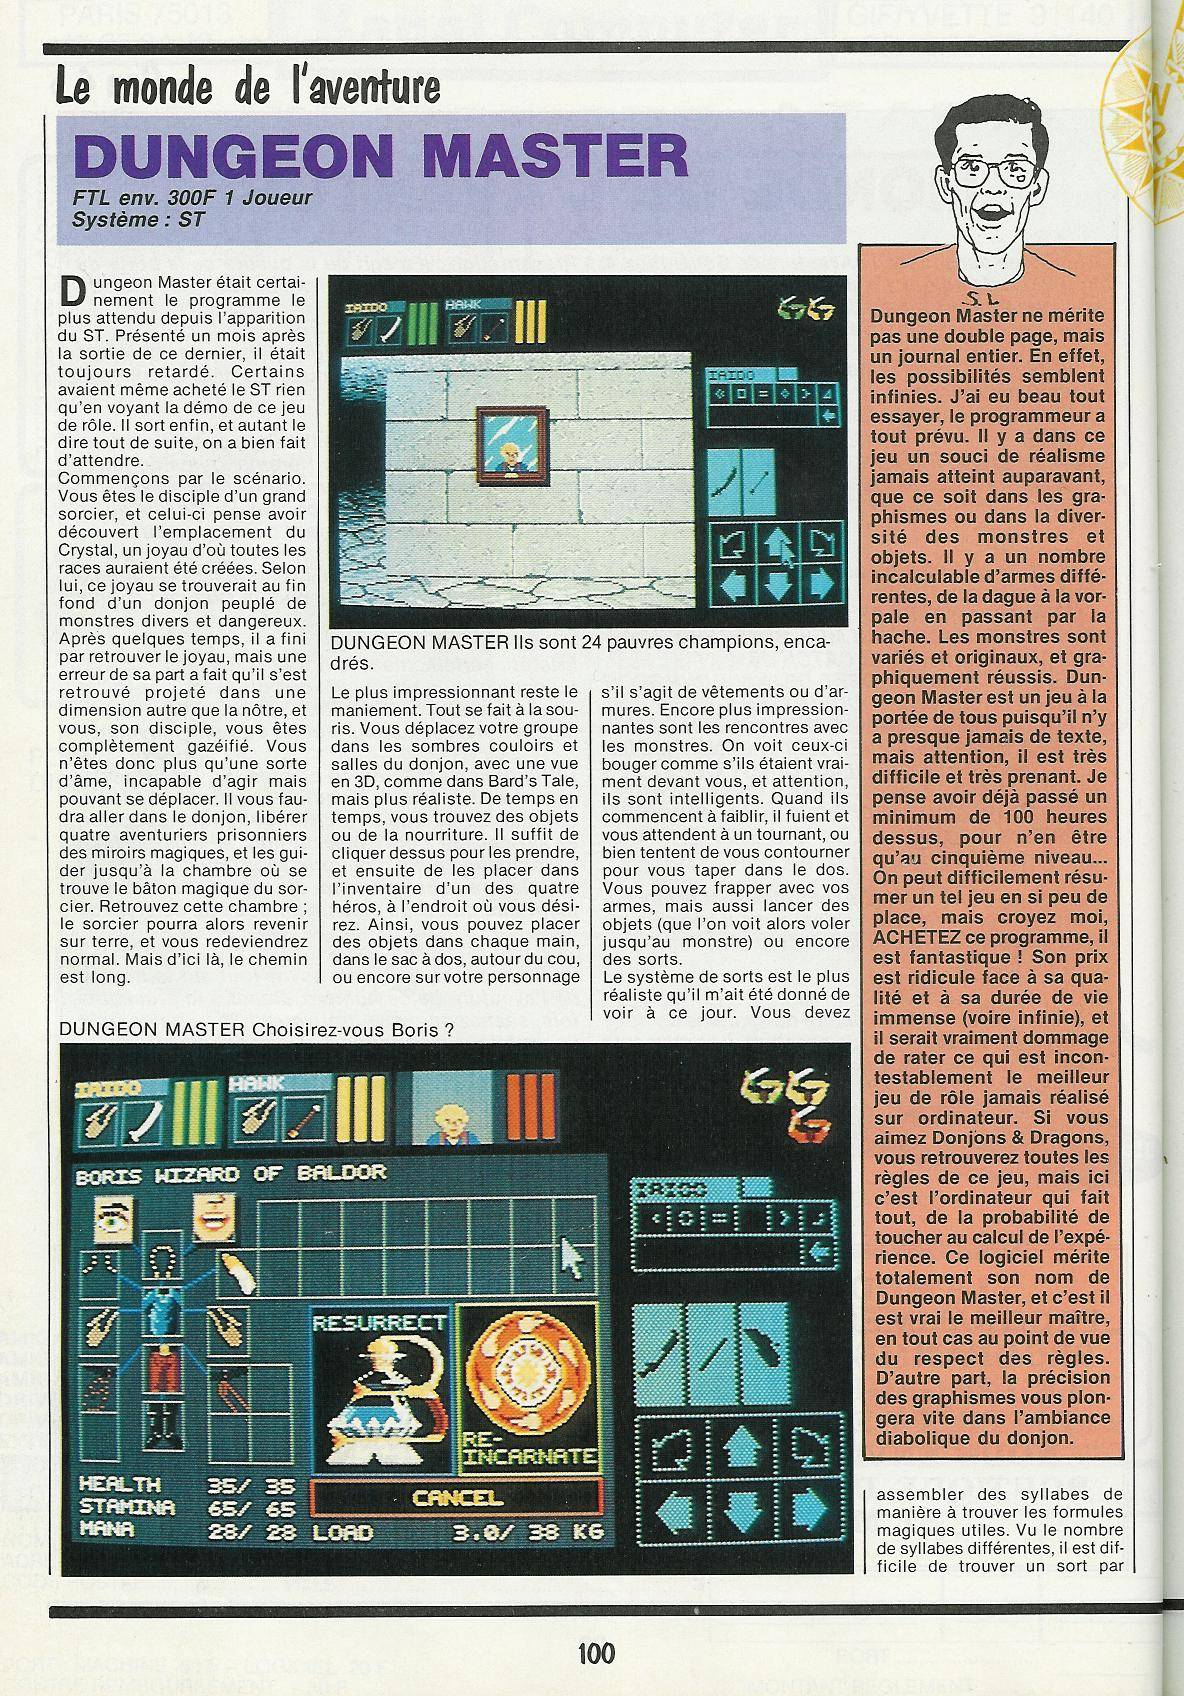 Dungeon Master for Atari ST Review published in French magazine 'Gen4', Issue #3, March 1988, Page 100